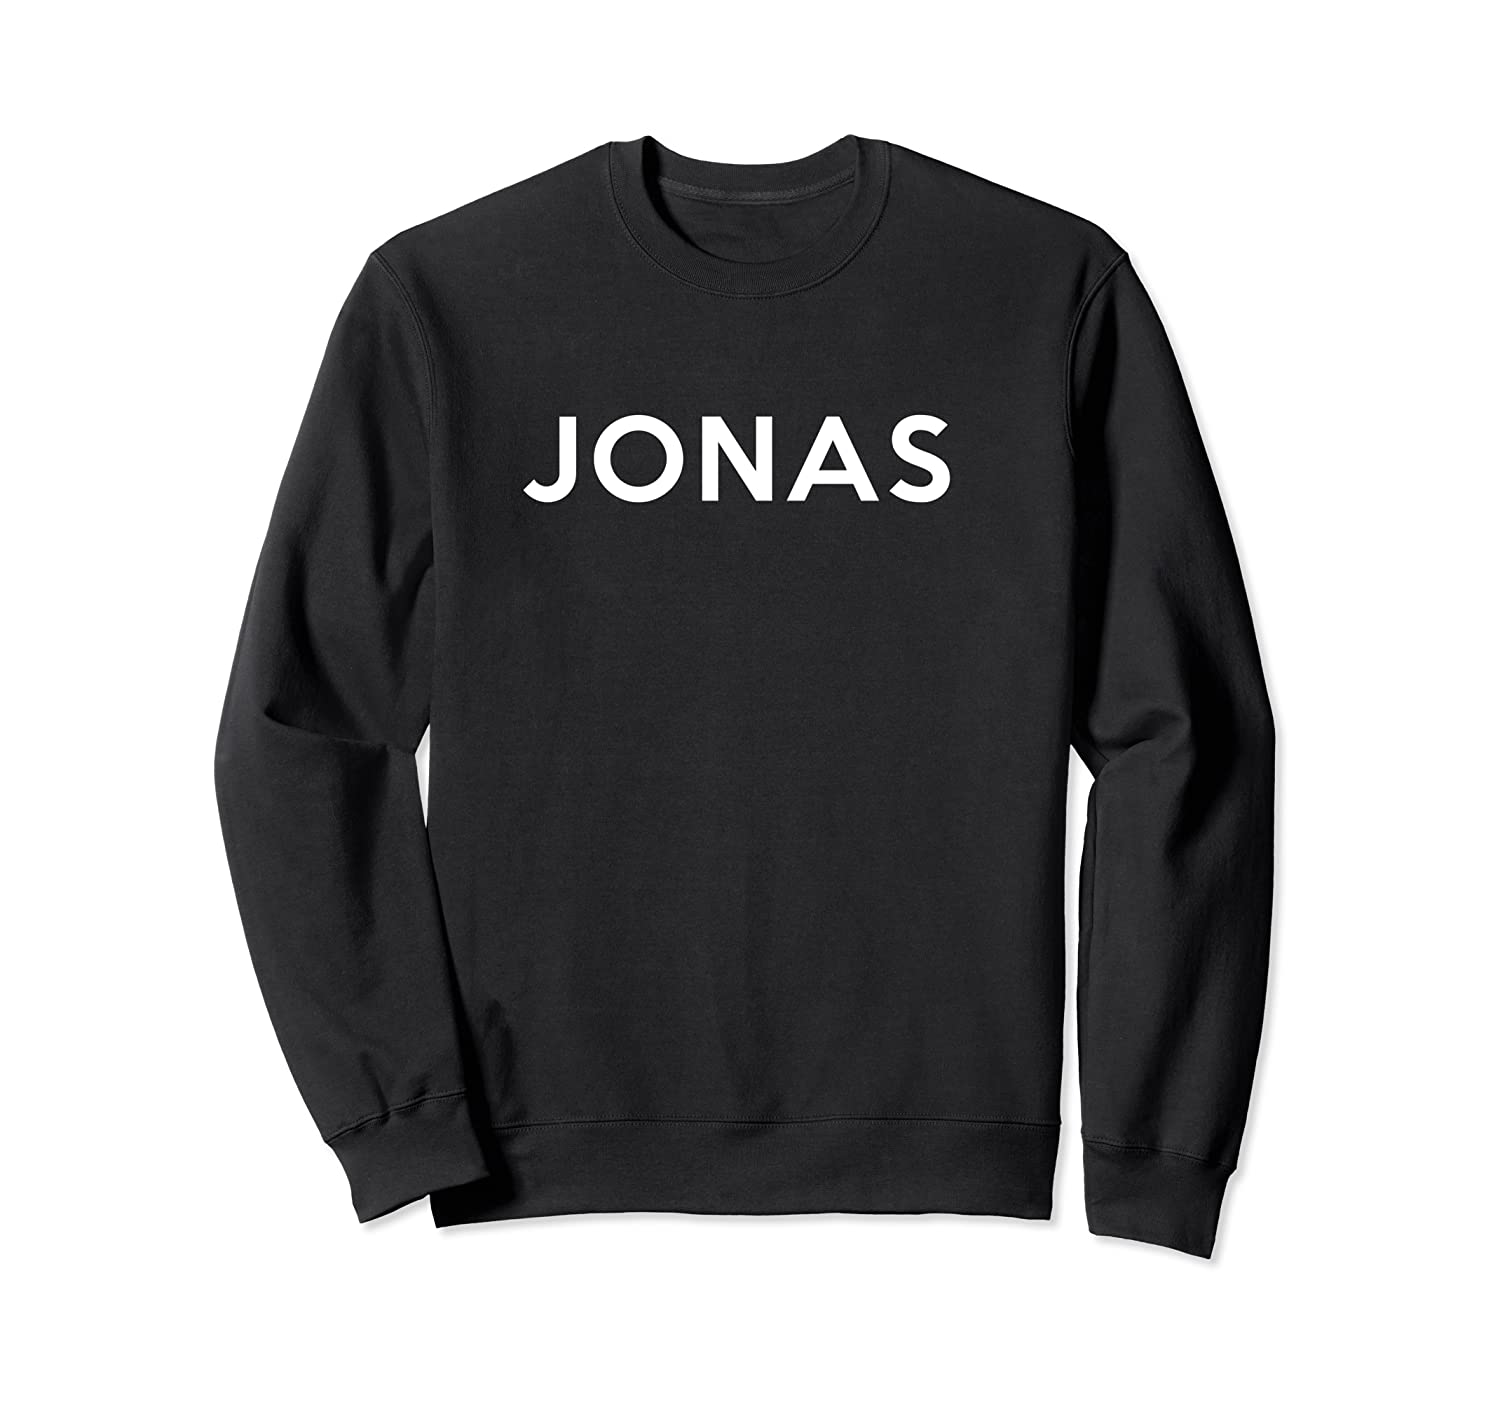 Jonas First Given Name Pride Funny The Original T Shirt Crewneck Sweater